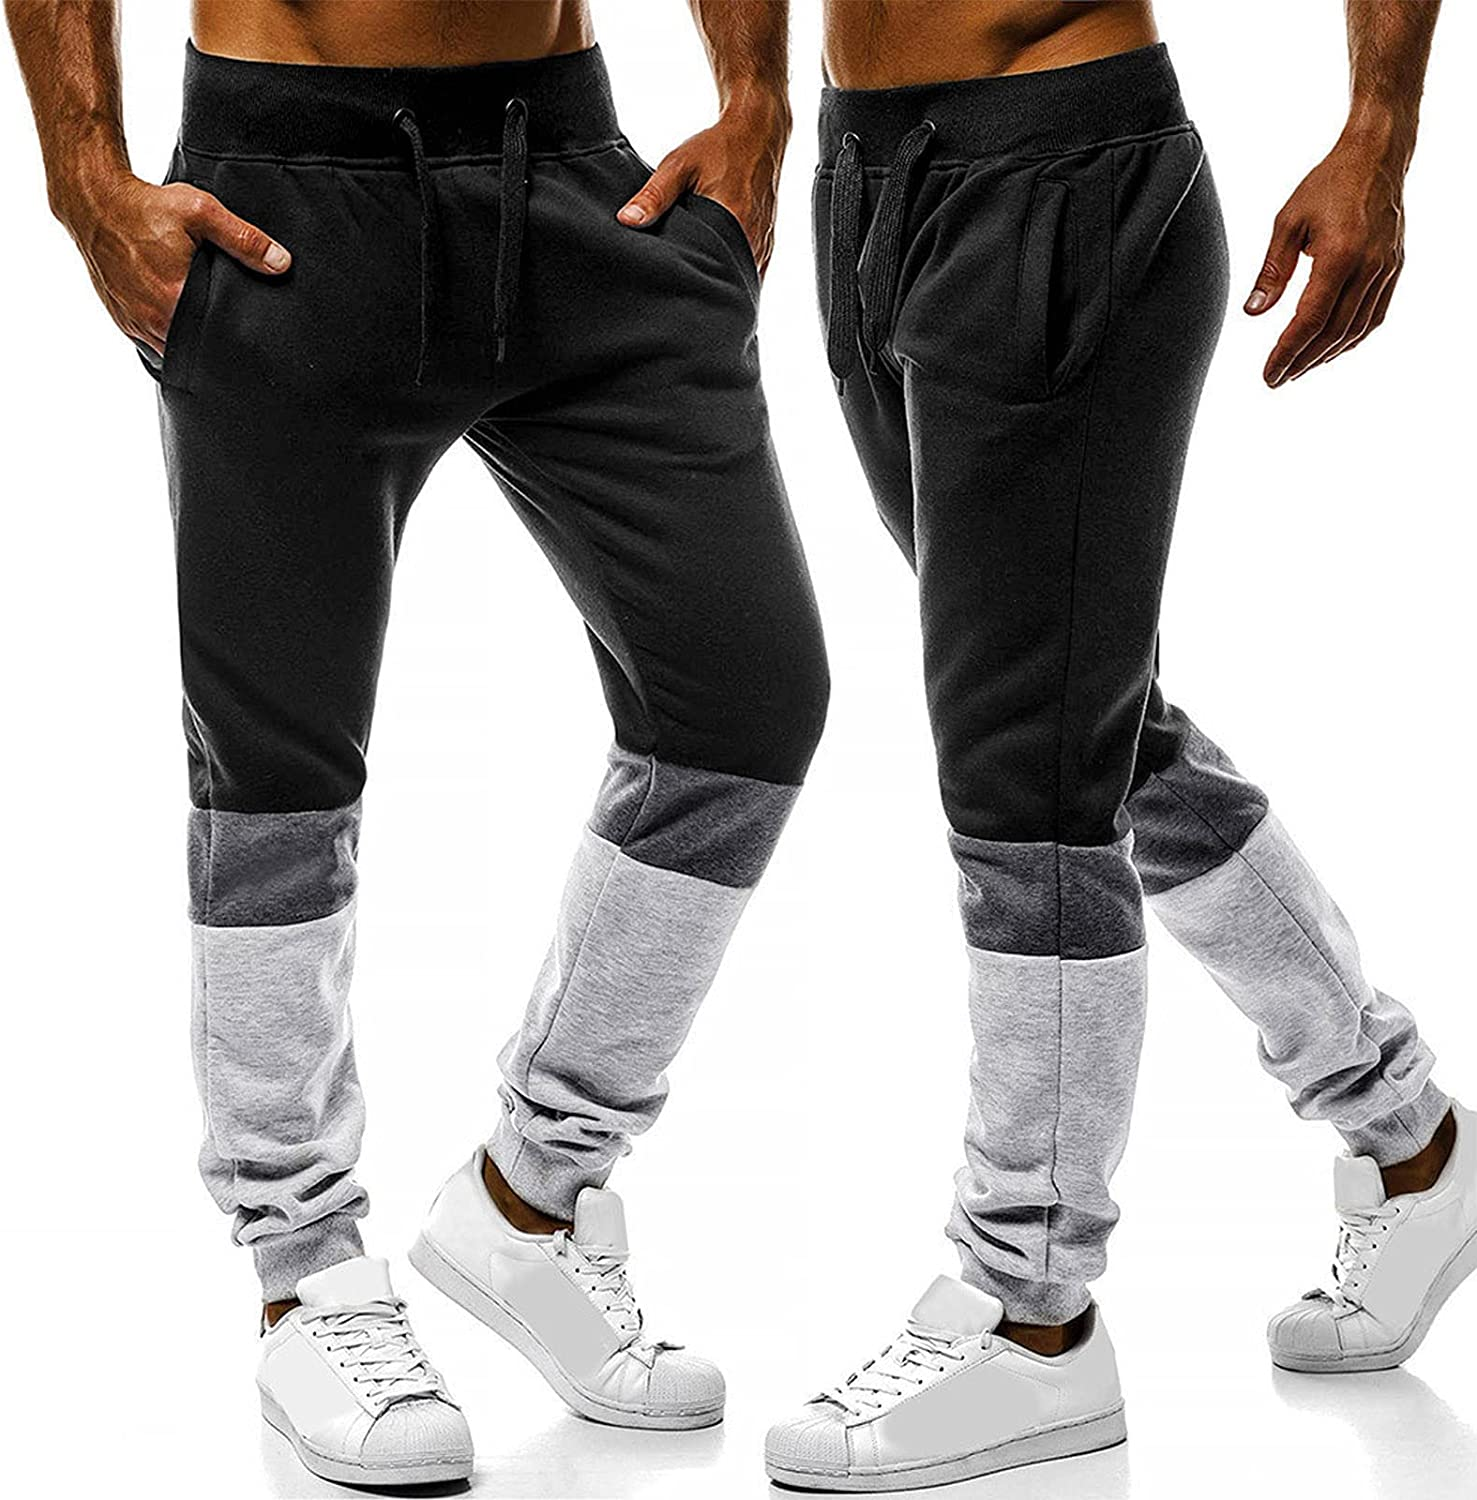 Huangse Men's Autumn Fashion Color Contrast Sport Trousers Casual Patchwork Athletic Workout Fitness Trousers with Drawstring